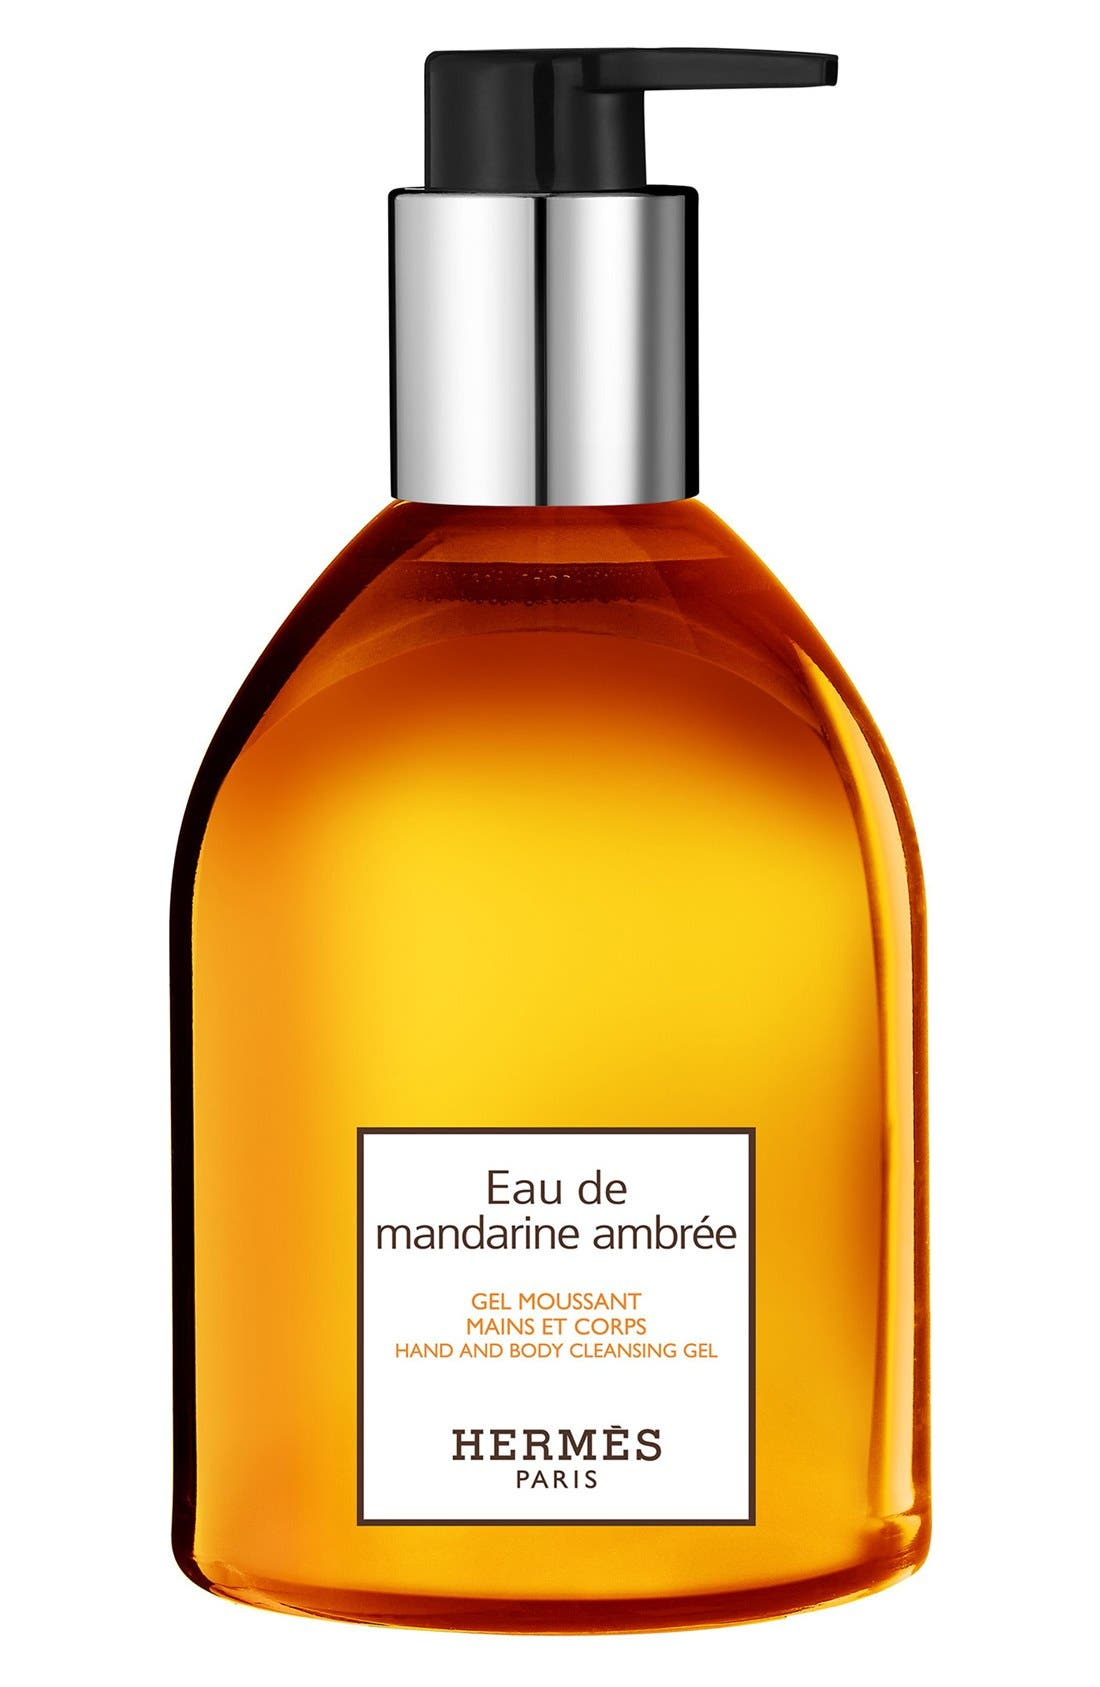 HERMÈS Eau de Mandarine Ambrée - Hand and body cleansing gel, Main, color, 000